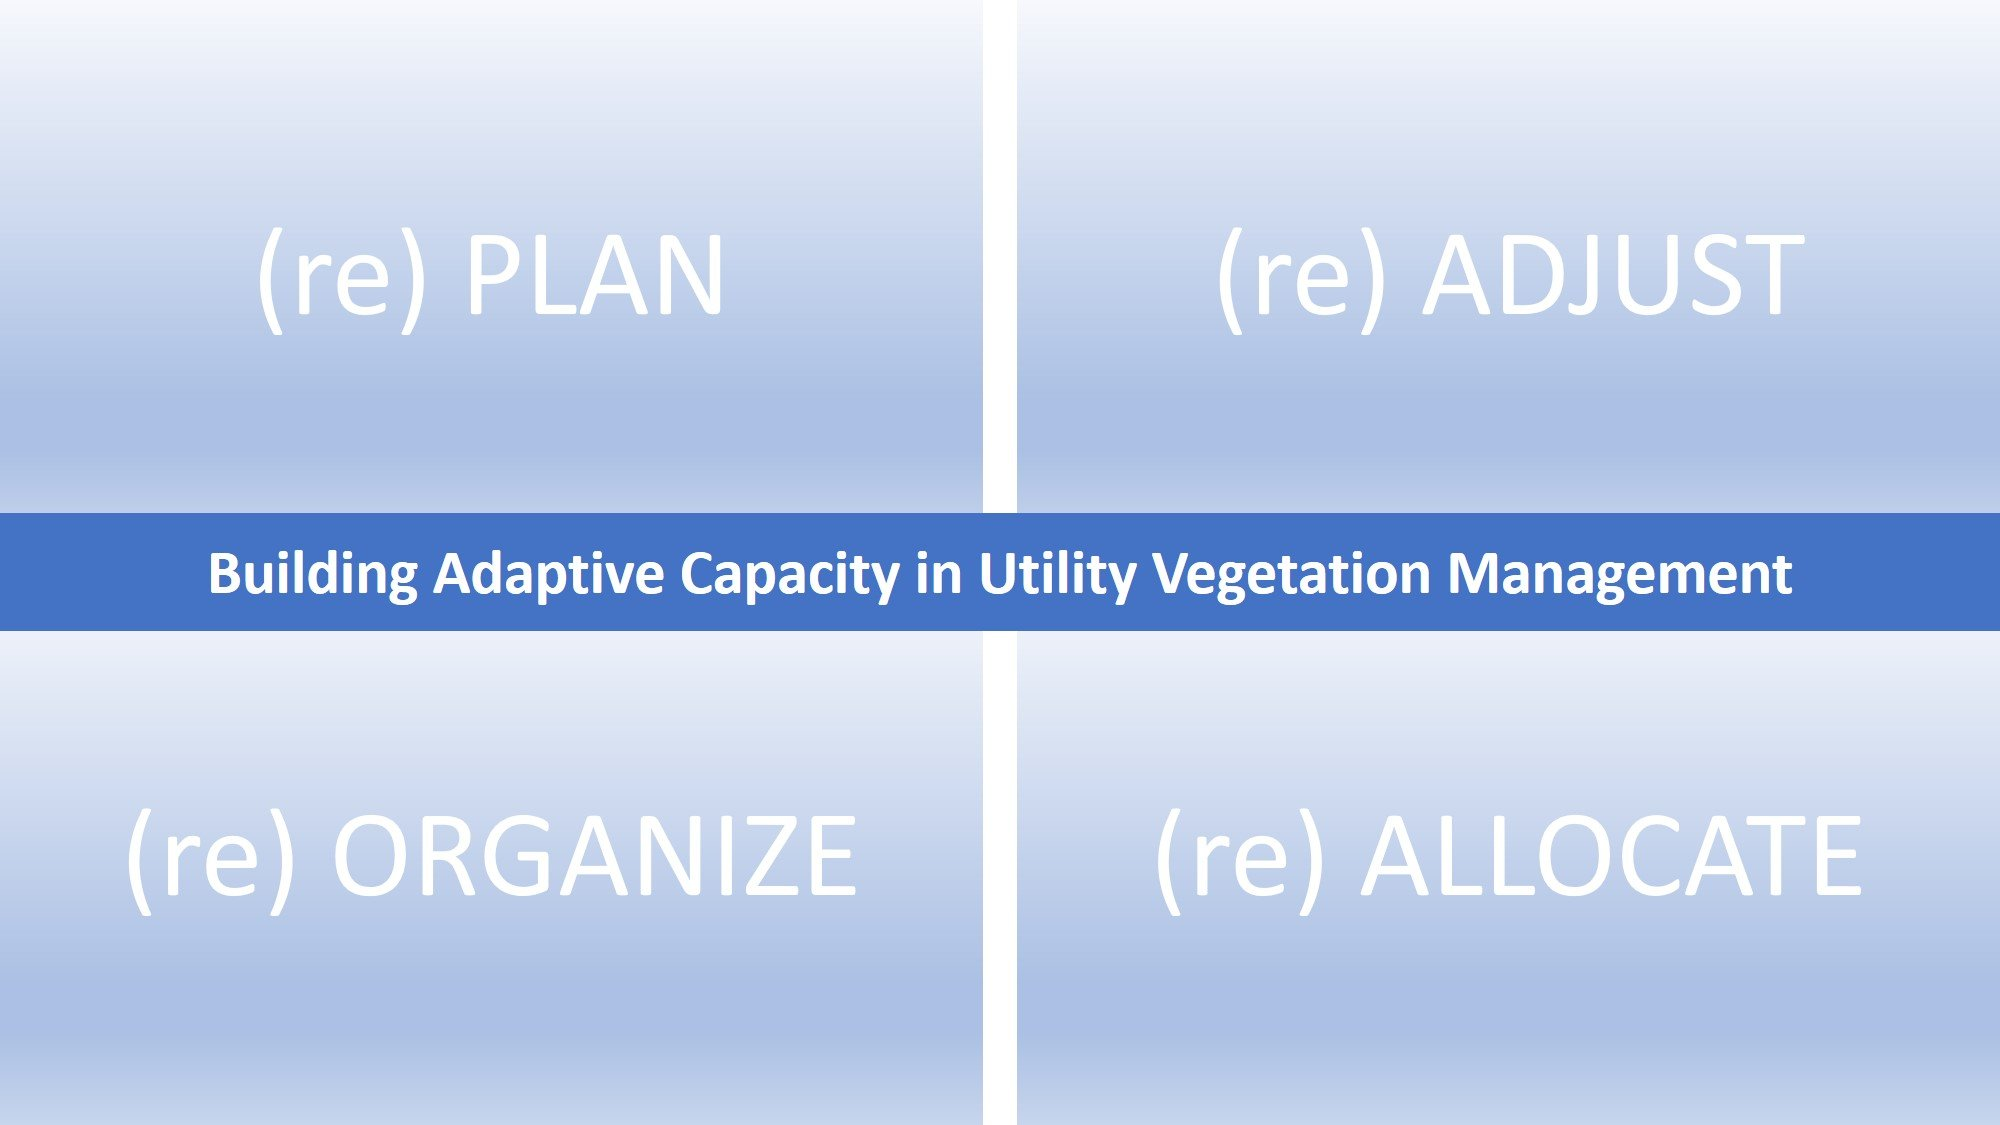 We Hire and Train for Safety with Adaptive Capacity